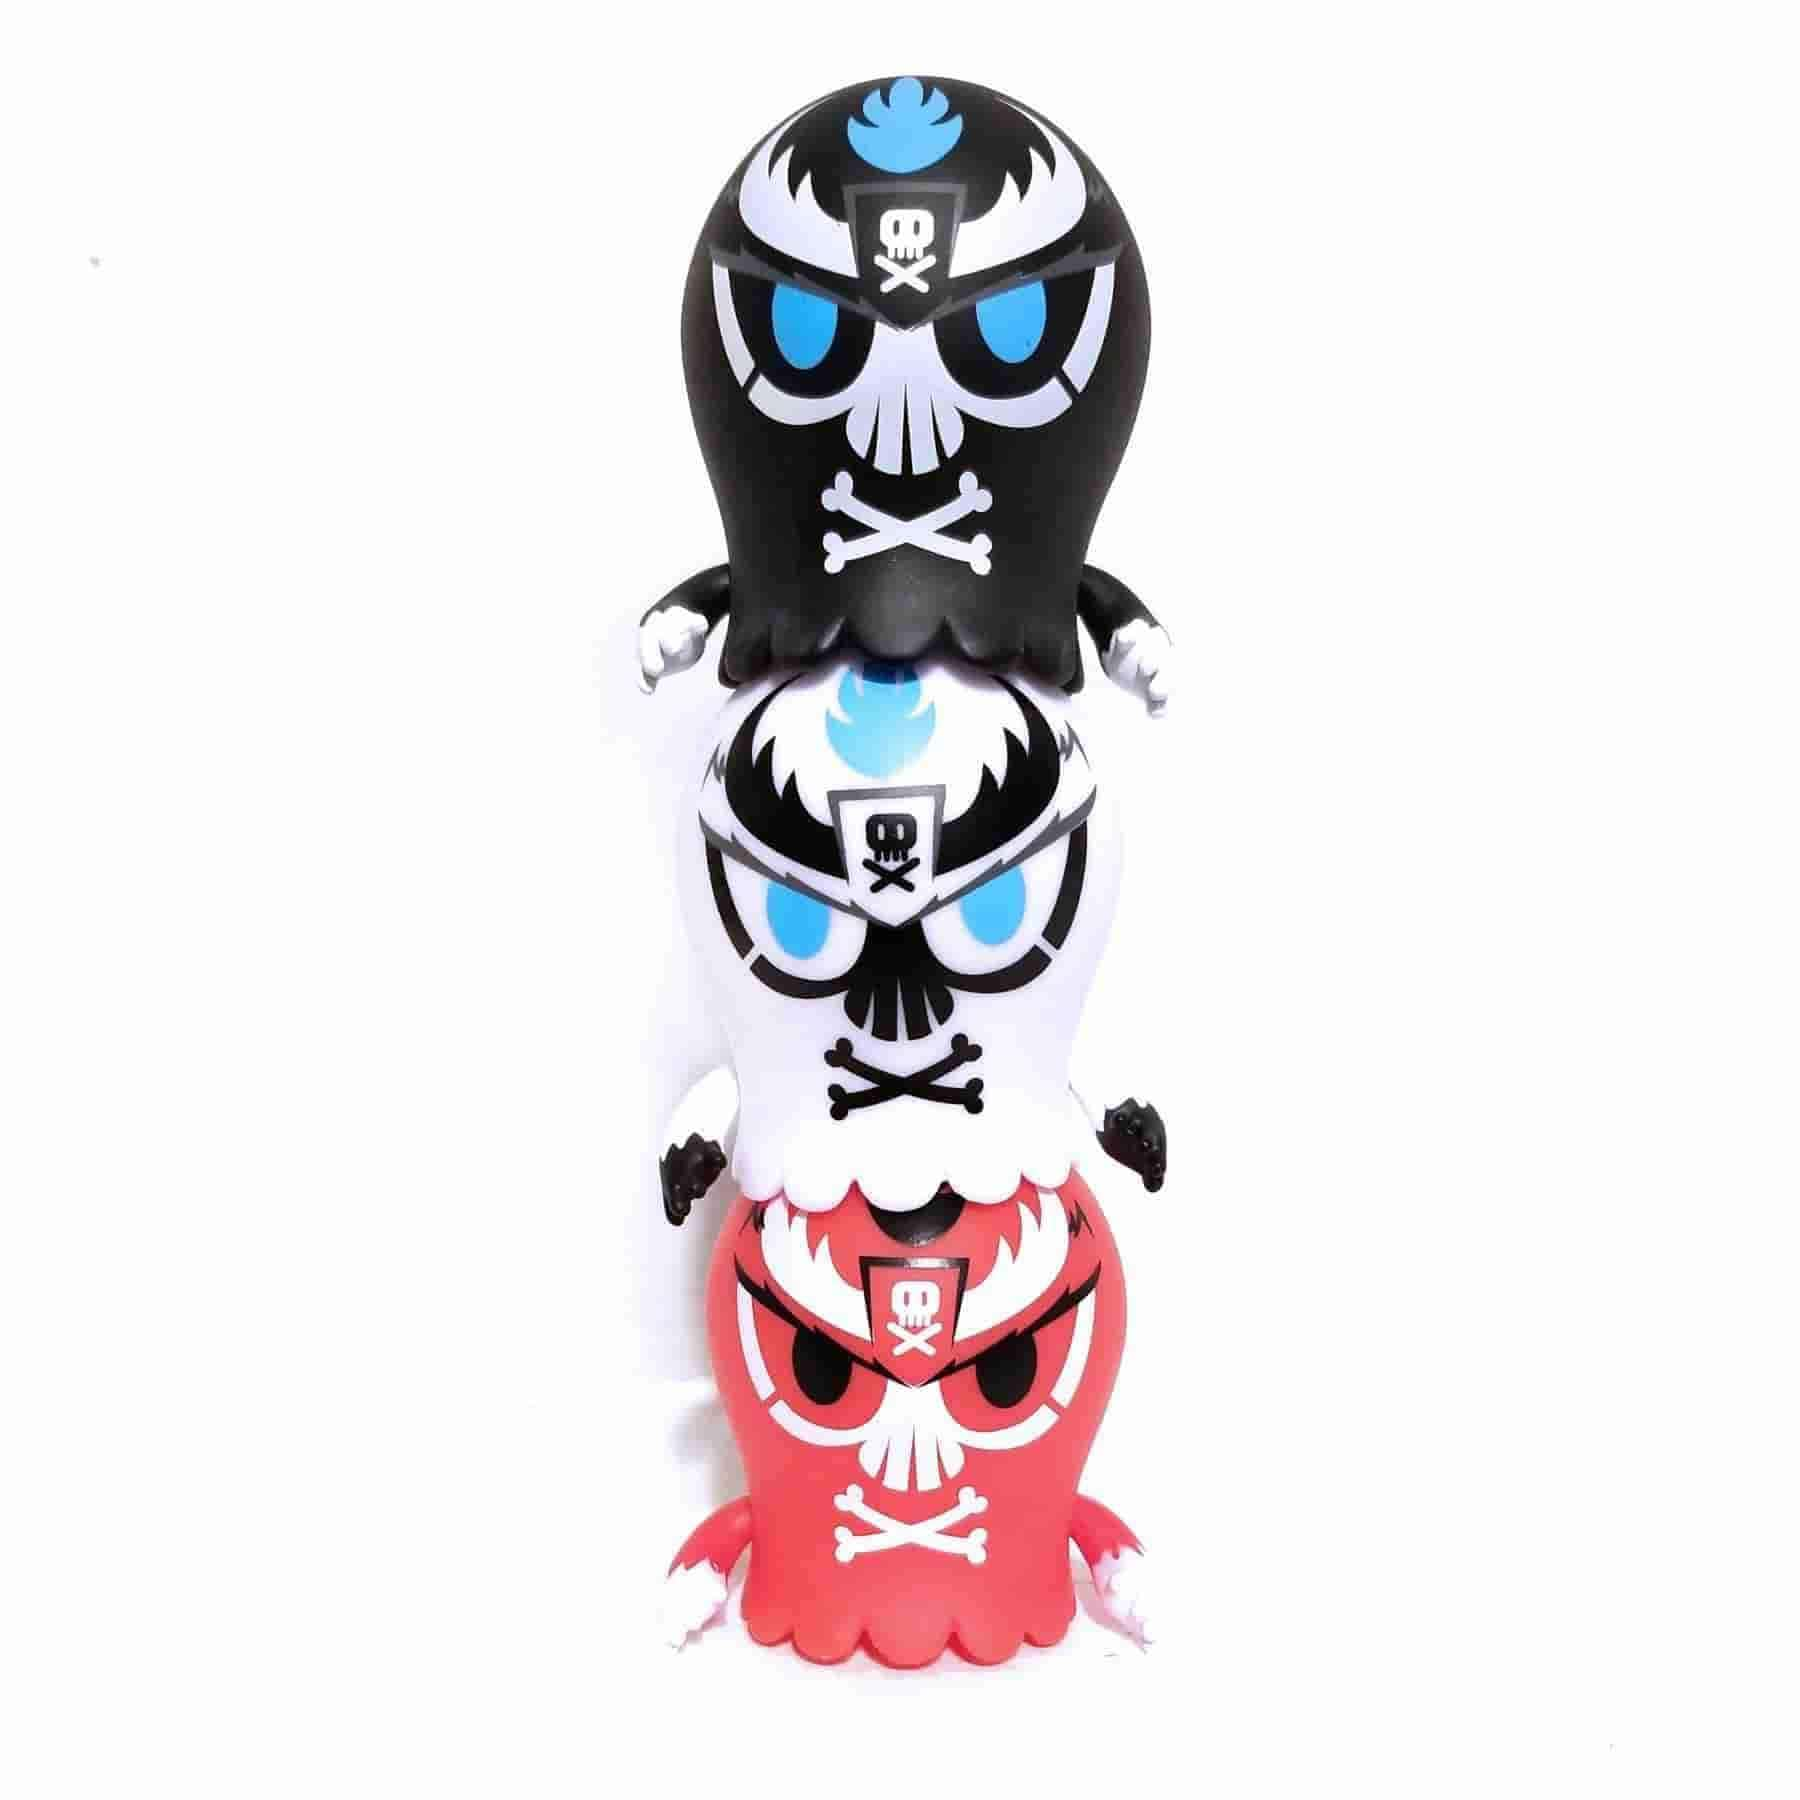 Emperor TEQ Bundle of All 3 (Red, White, Black) Jaspar by Quiccs x Martian Toys - IamRetro